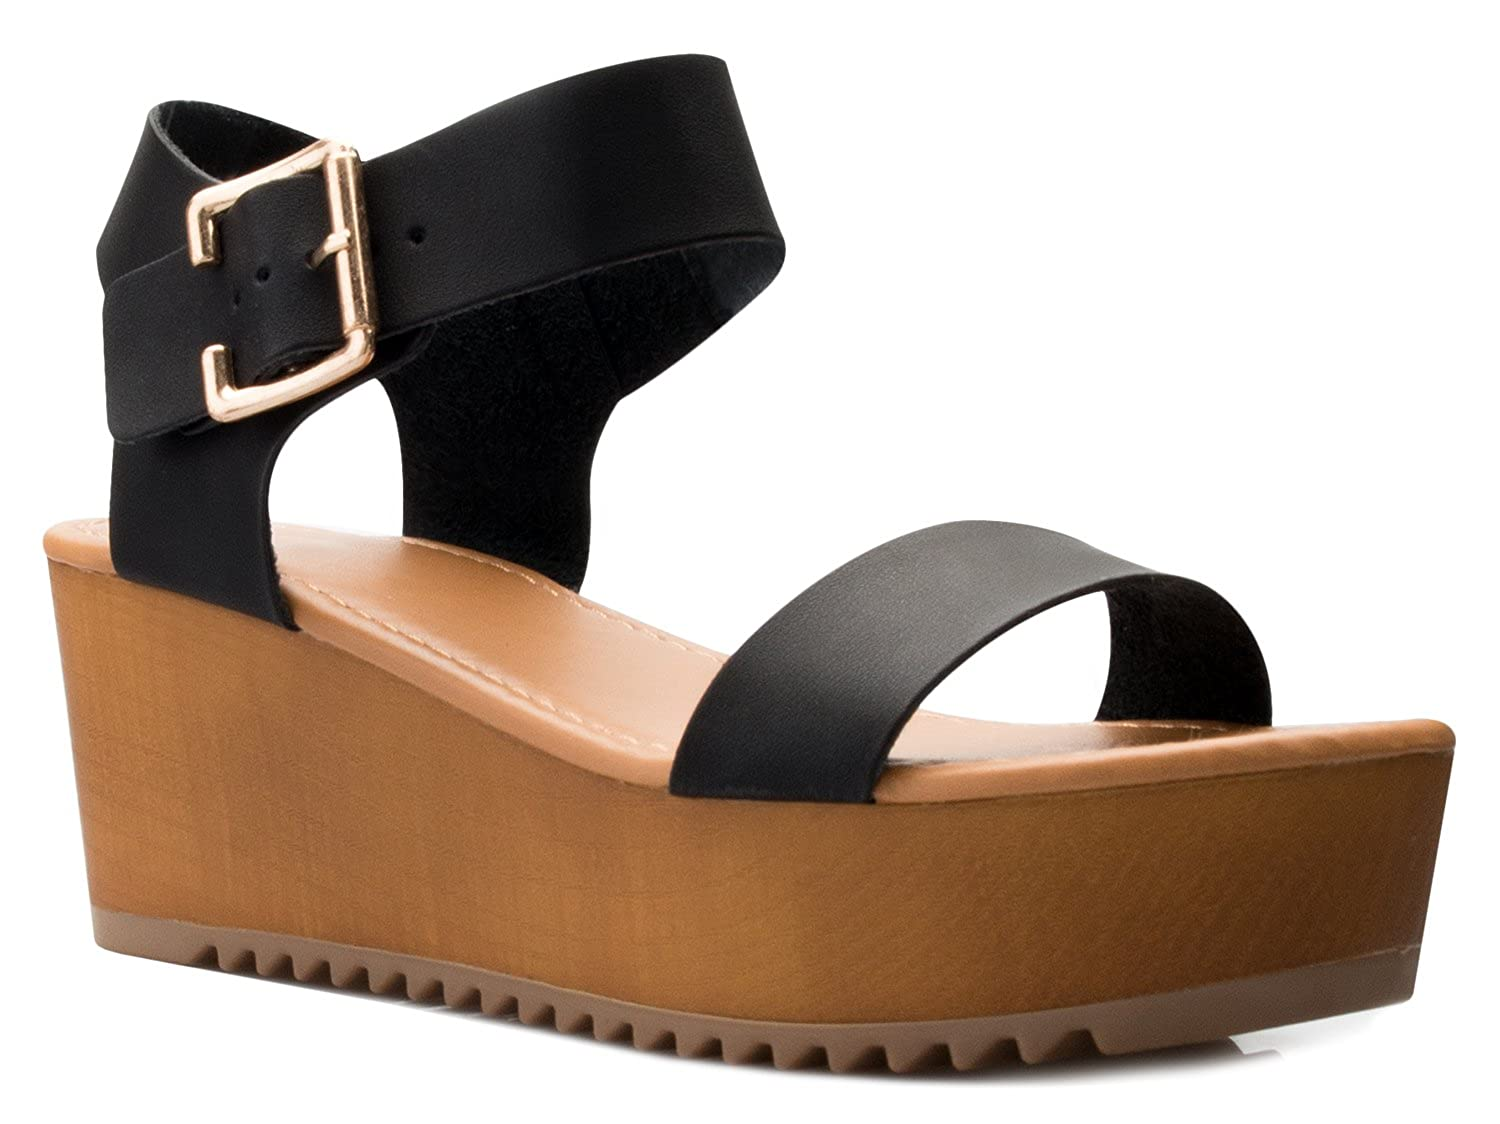 0f8bc5dbca7a Amazon.com  OLIVIA K Women s Platform Buckle Sandal - Open Peep Toe Fashion  Chunky Ankle Strap Shoe  Shoes